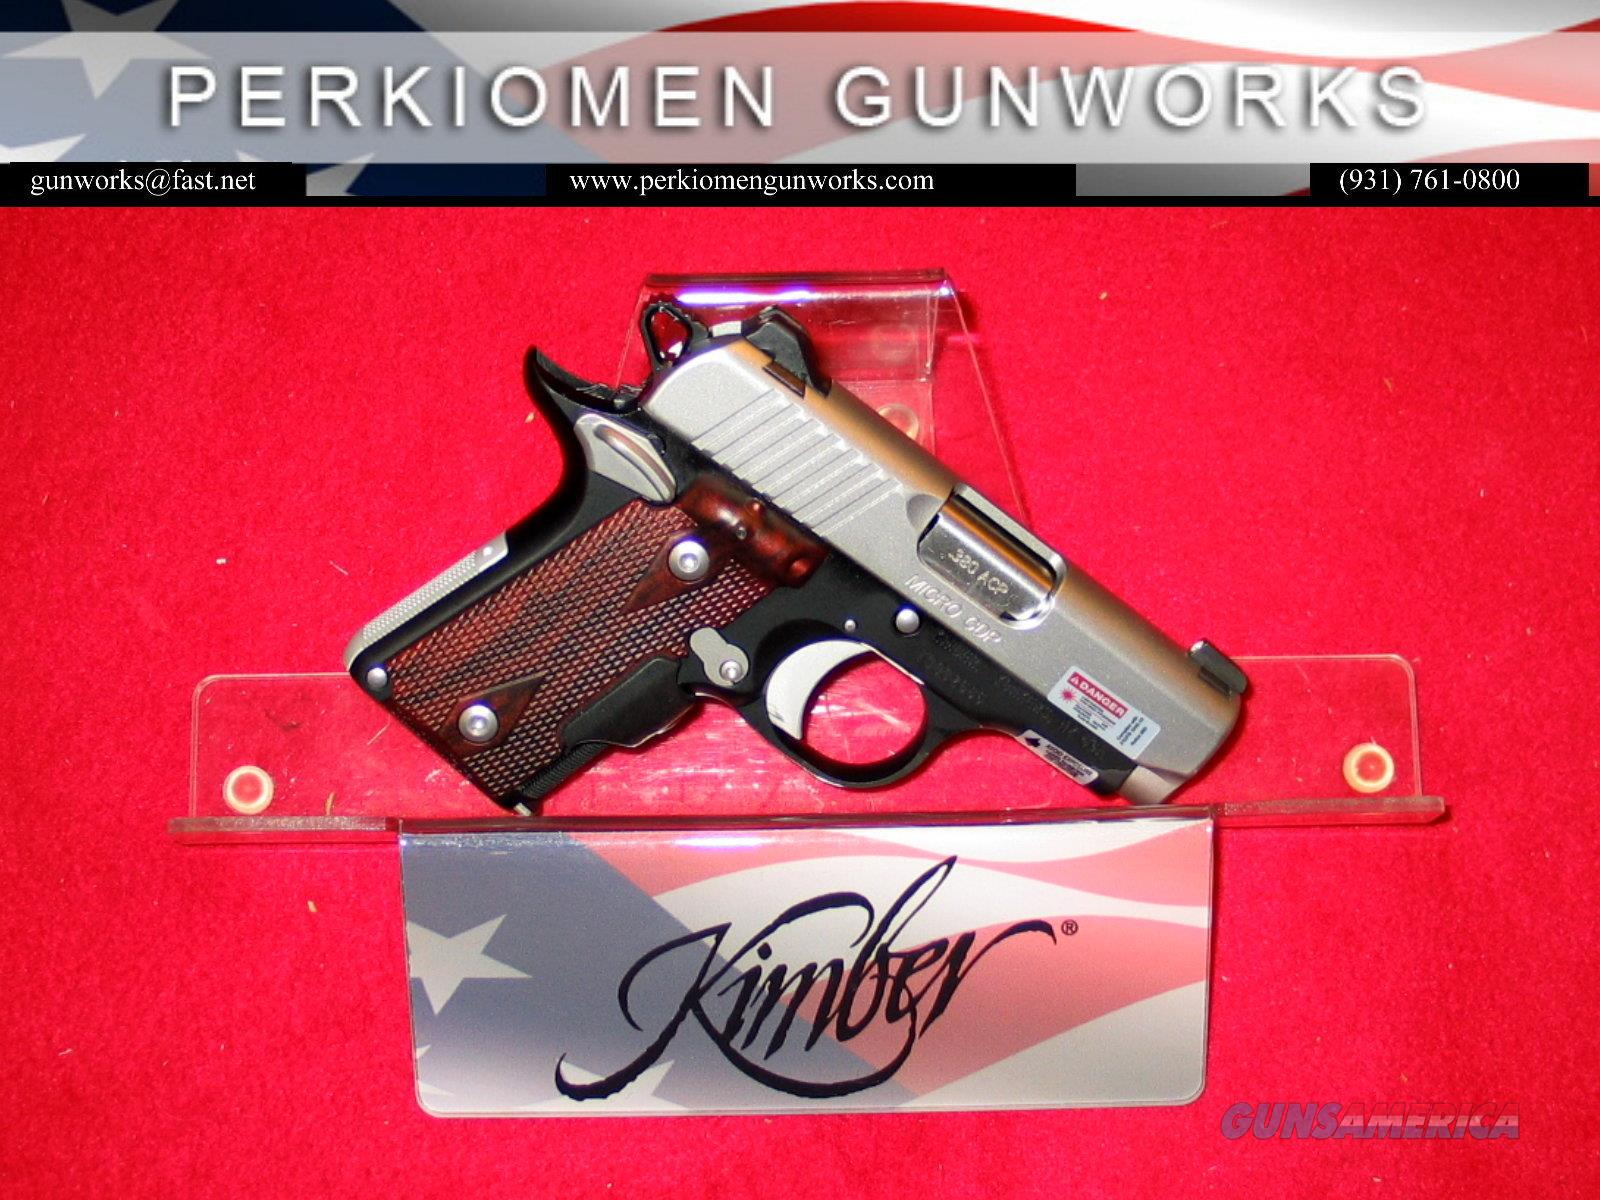 Micro CDP (LG) .380acp w/Laser Grips - New in Box  Guns > Pistols > Kimber of America Pistols > Micro